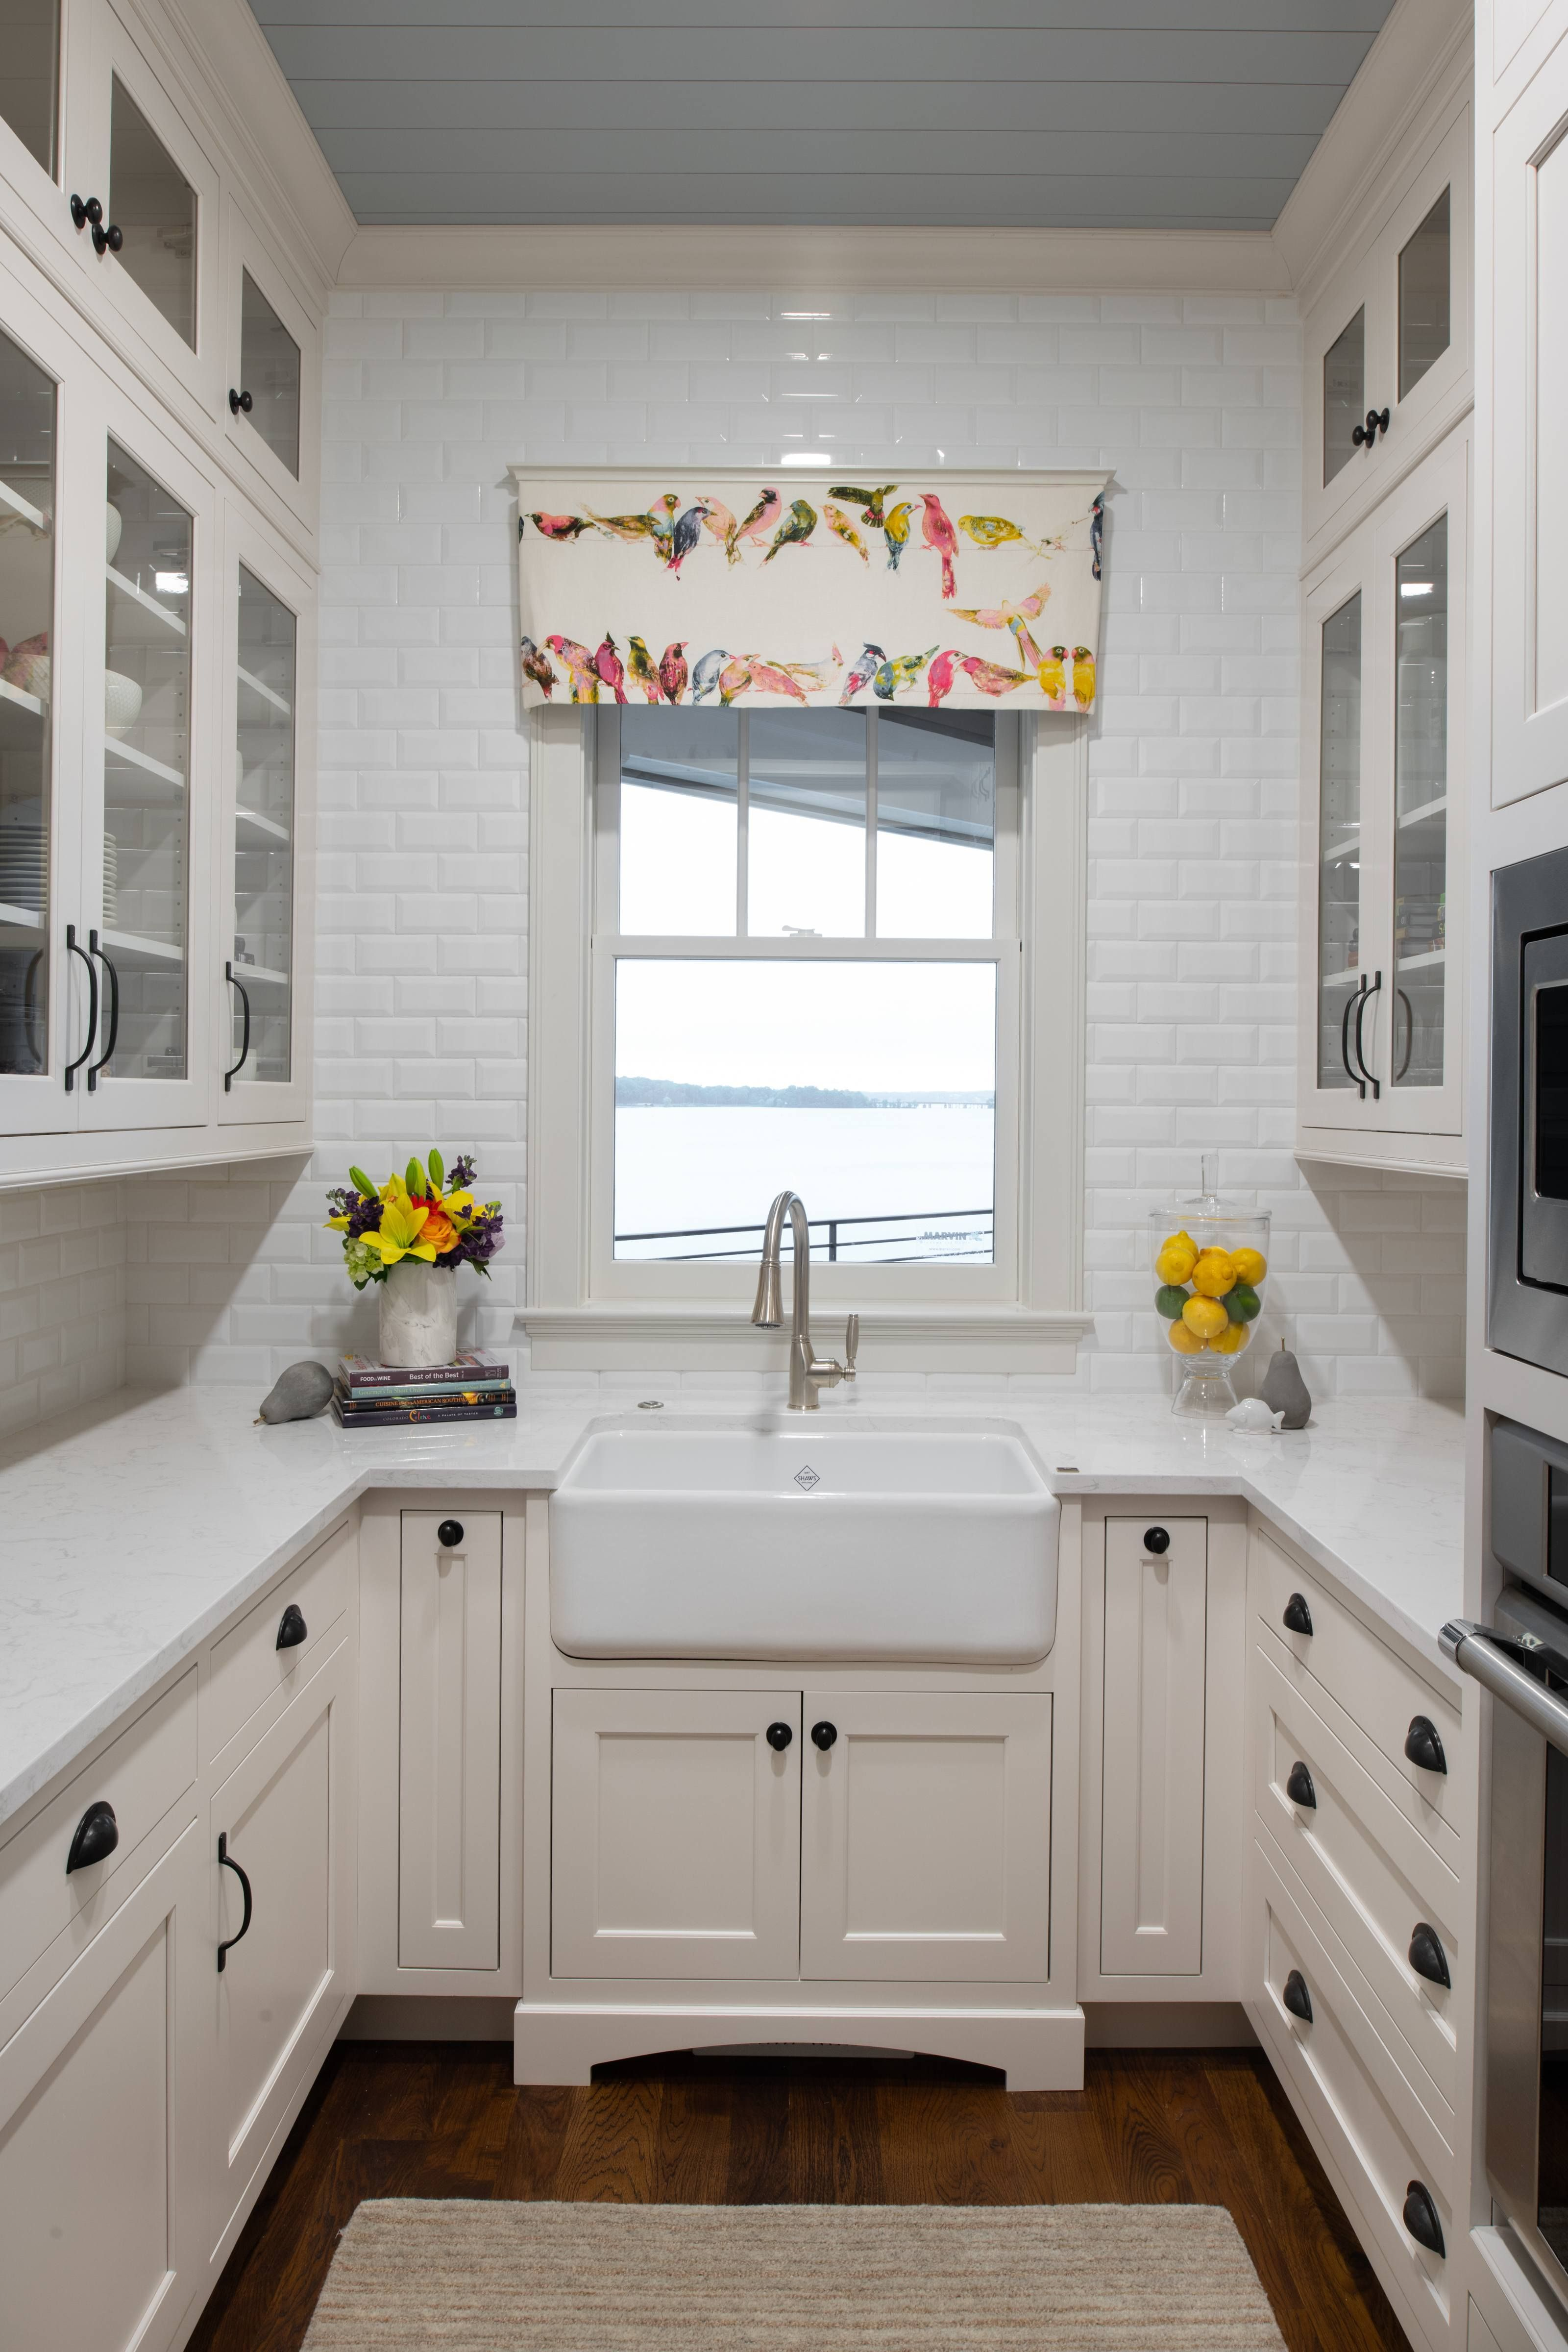 cambria countertops beauty and durability throughout the home with images u shaped kitchen on u kitchen remodel id=96864